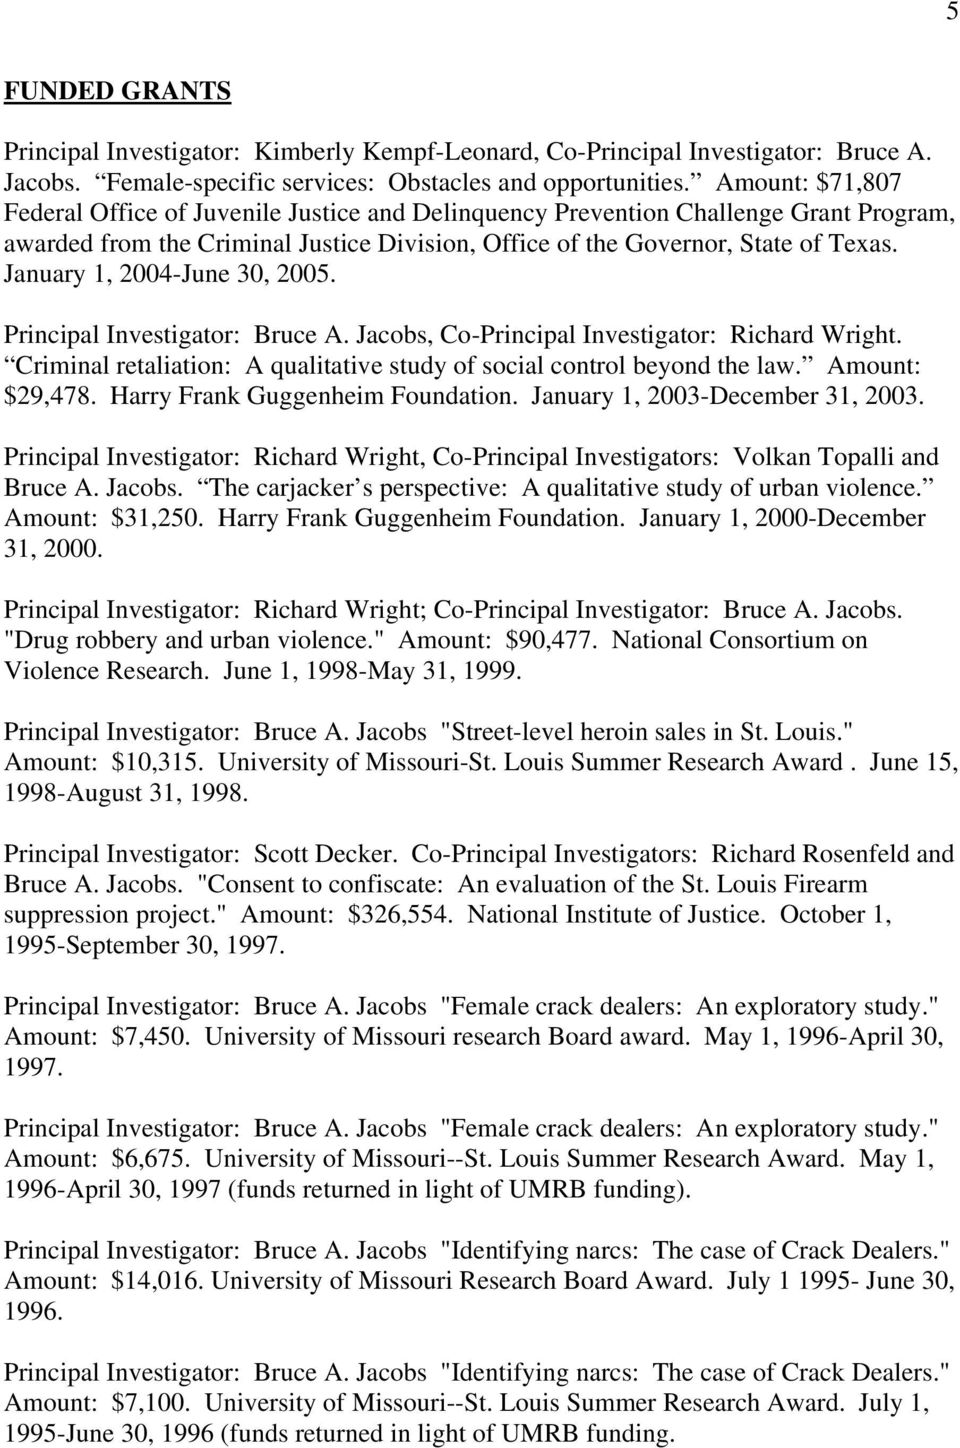 January 1, 2004-June 30, 2005. Principal Investigator: Bruce A. Jacobs, Co-Principal Investigator: Richard Wright. Criminal retaliation: A qualitative study of social control beyond the law.